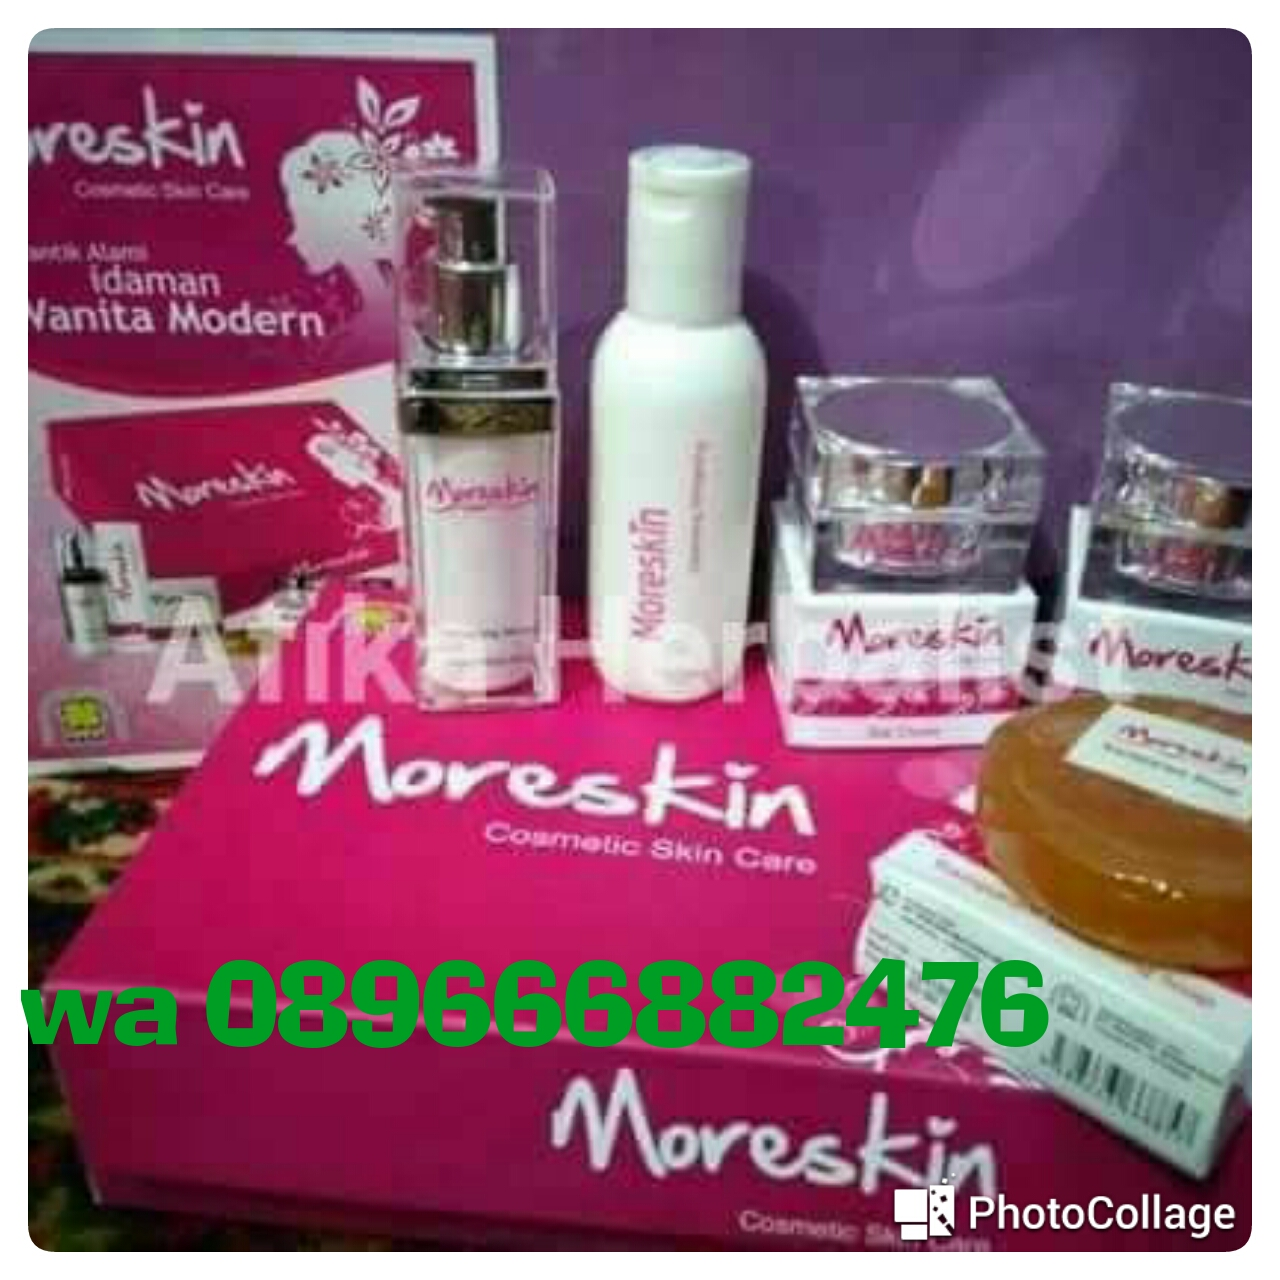 Agen Moreskin Skin Care Dimanado Serum Vitamin C Nasa